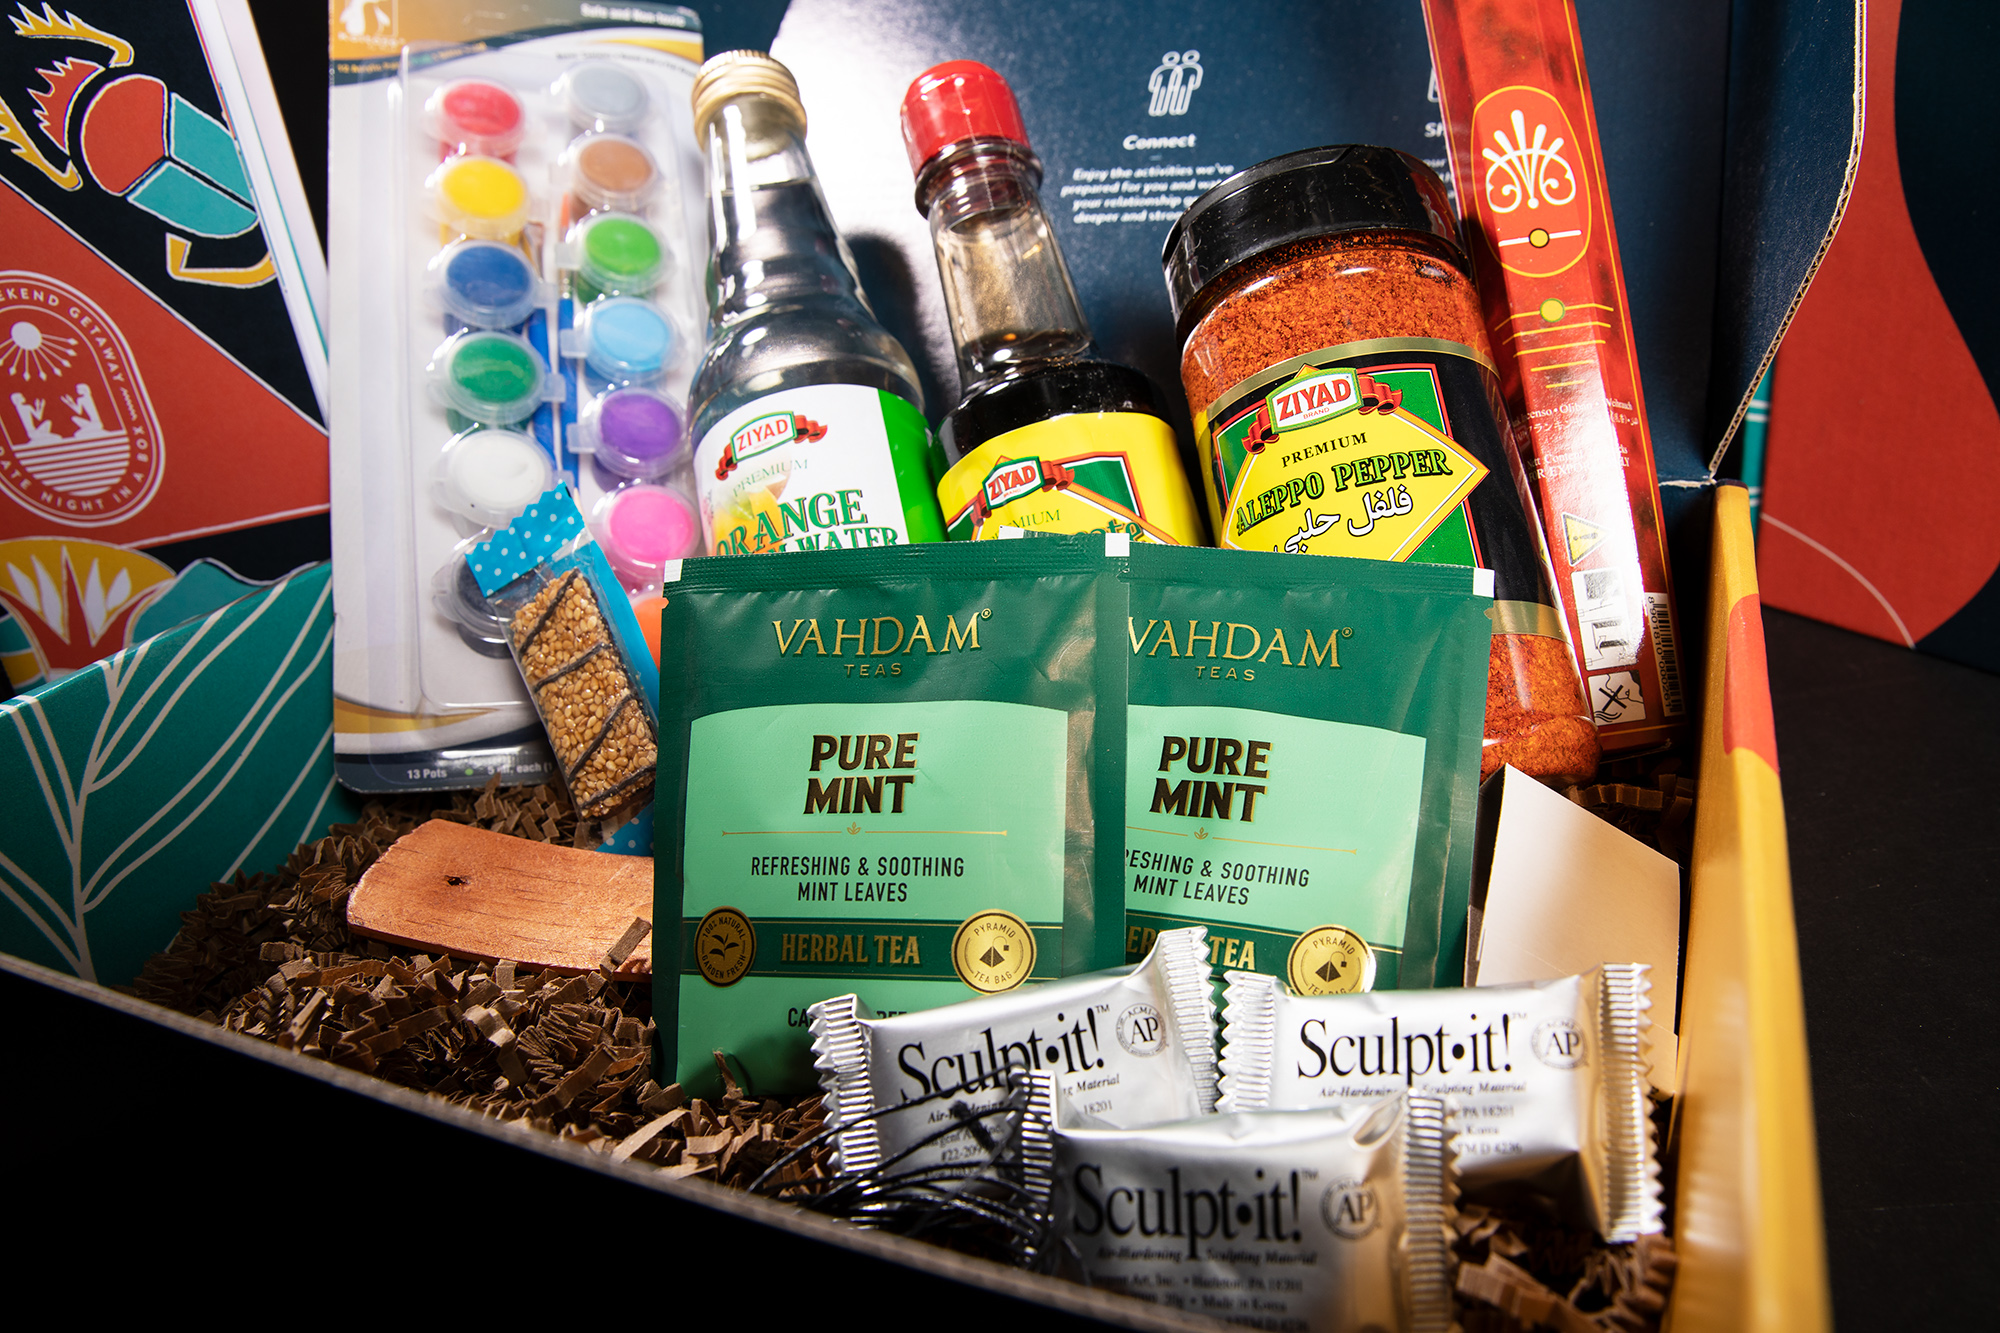 A basket full of goodies like sauces, chocolate, water              color paints and other seasonings for a date night.